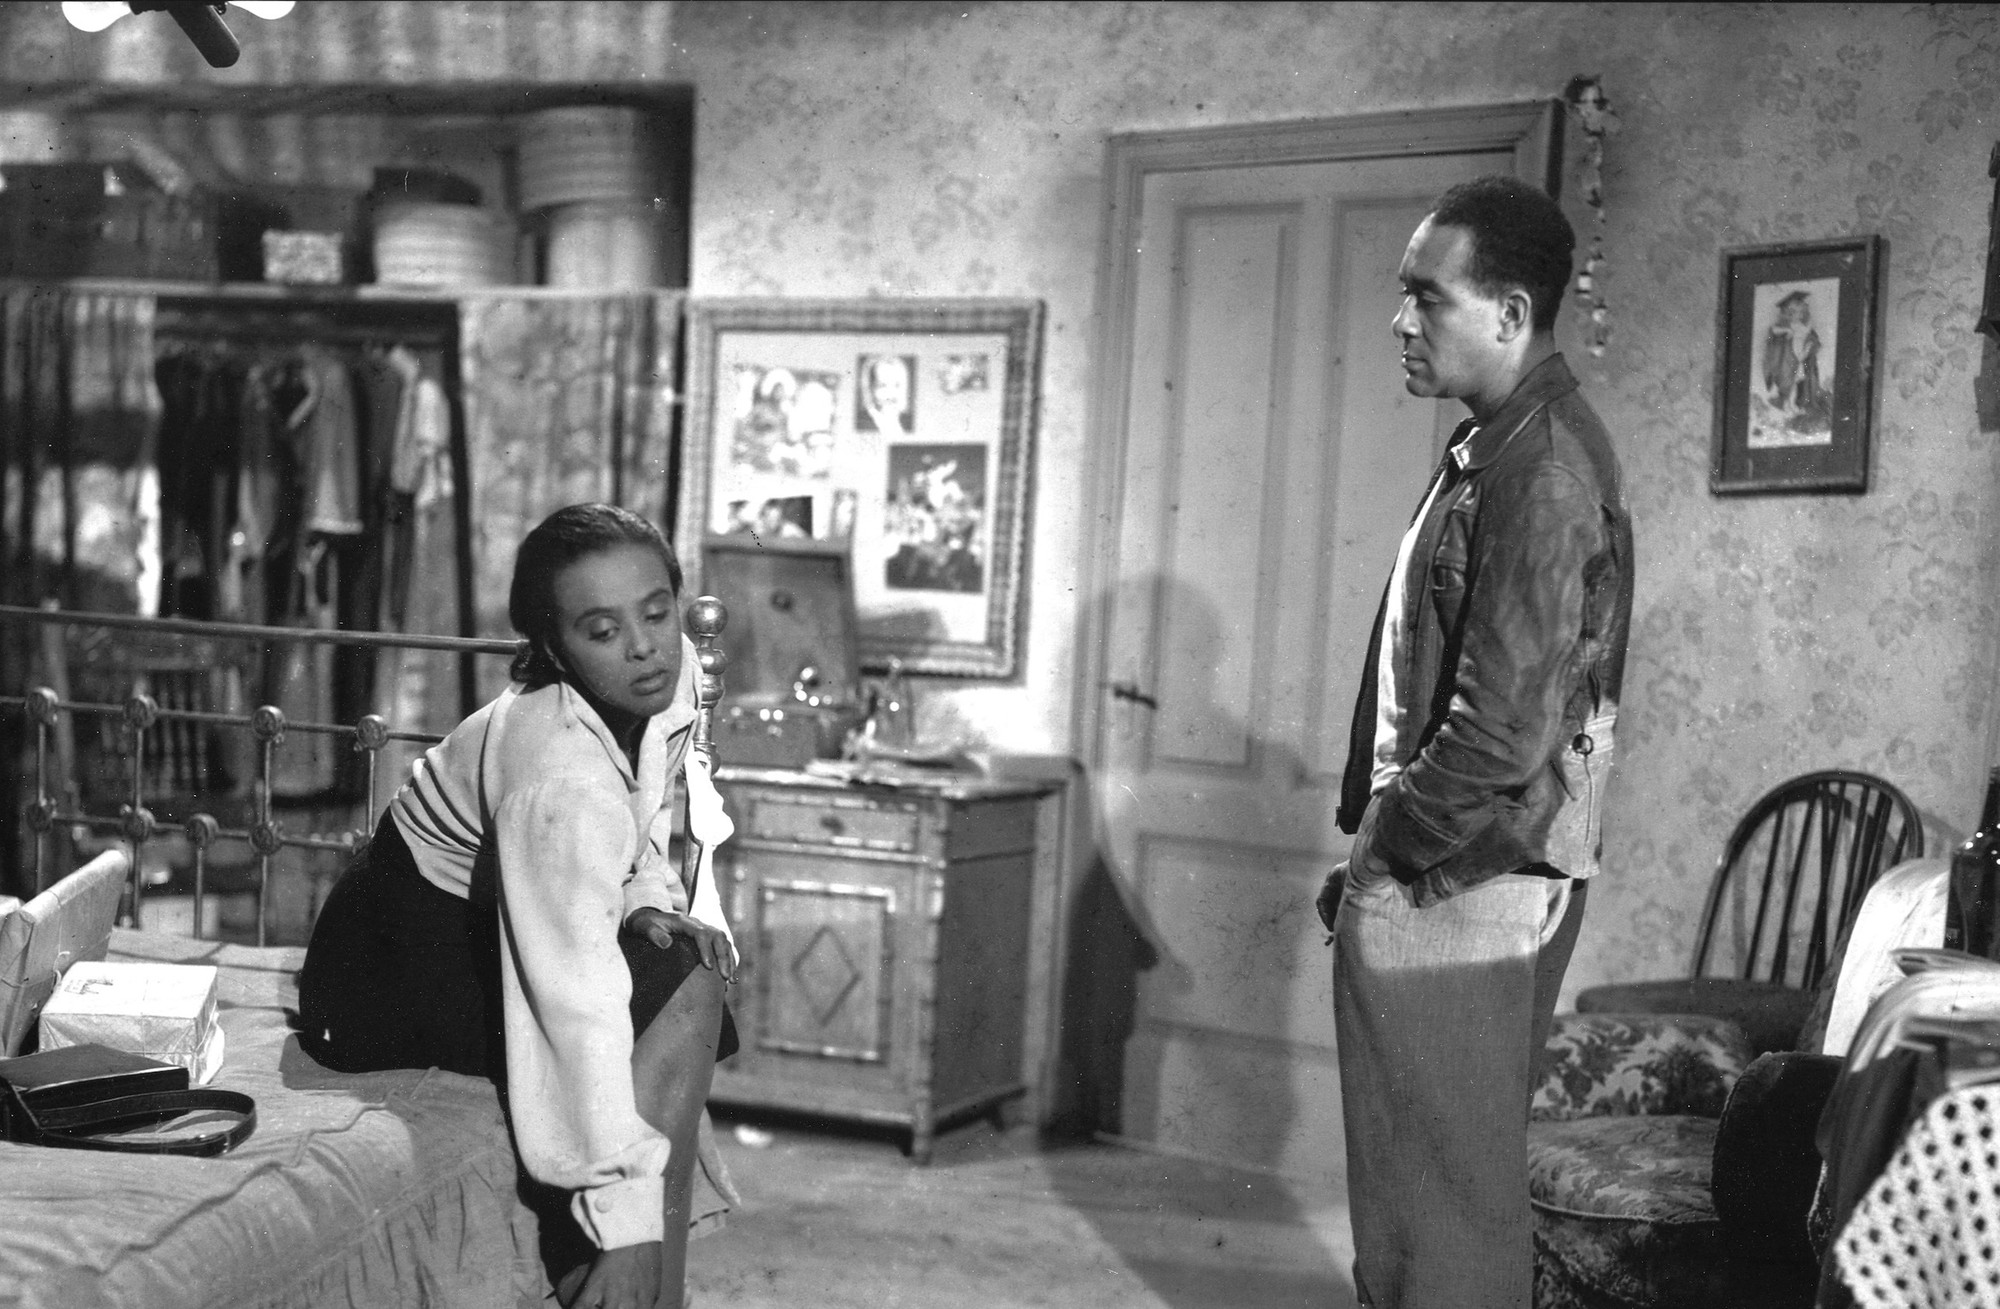 Native Son. 1951. Argentina. Directed by Pierre Chenal. 91 min.